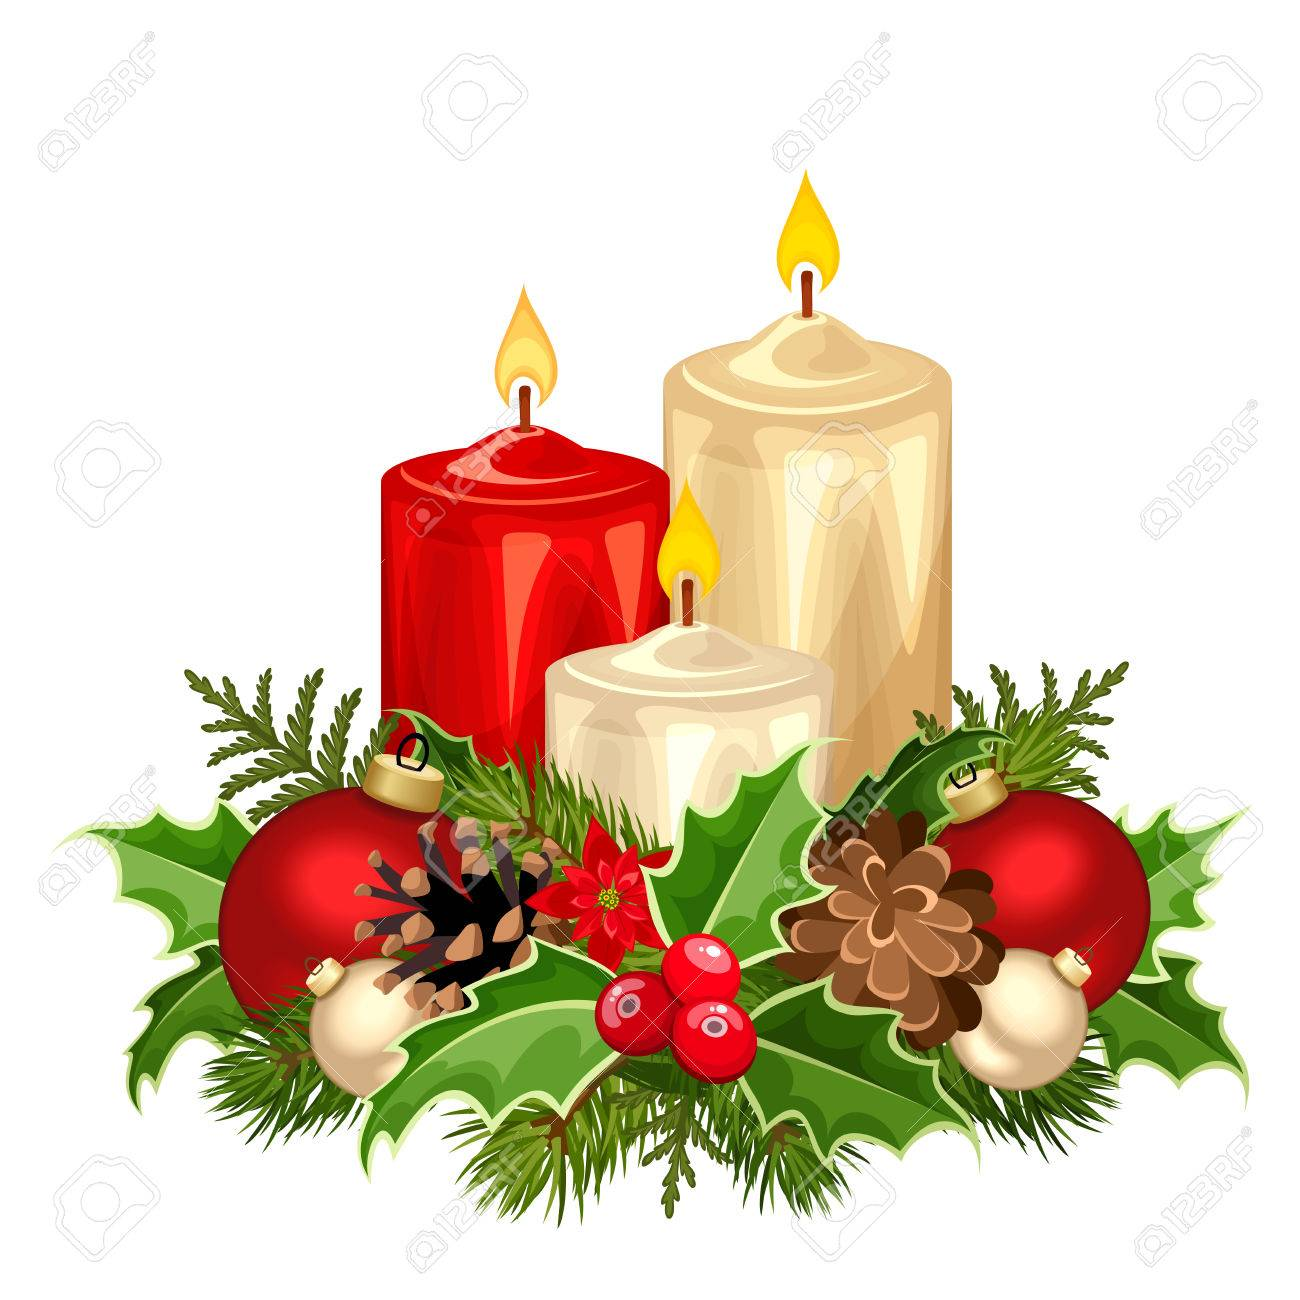 Christmas Candles.Vector Illustration Of Three Red And White Christmas Candles